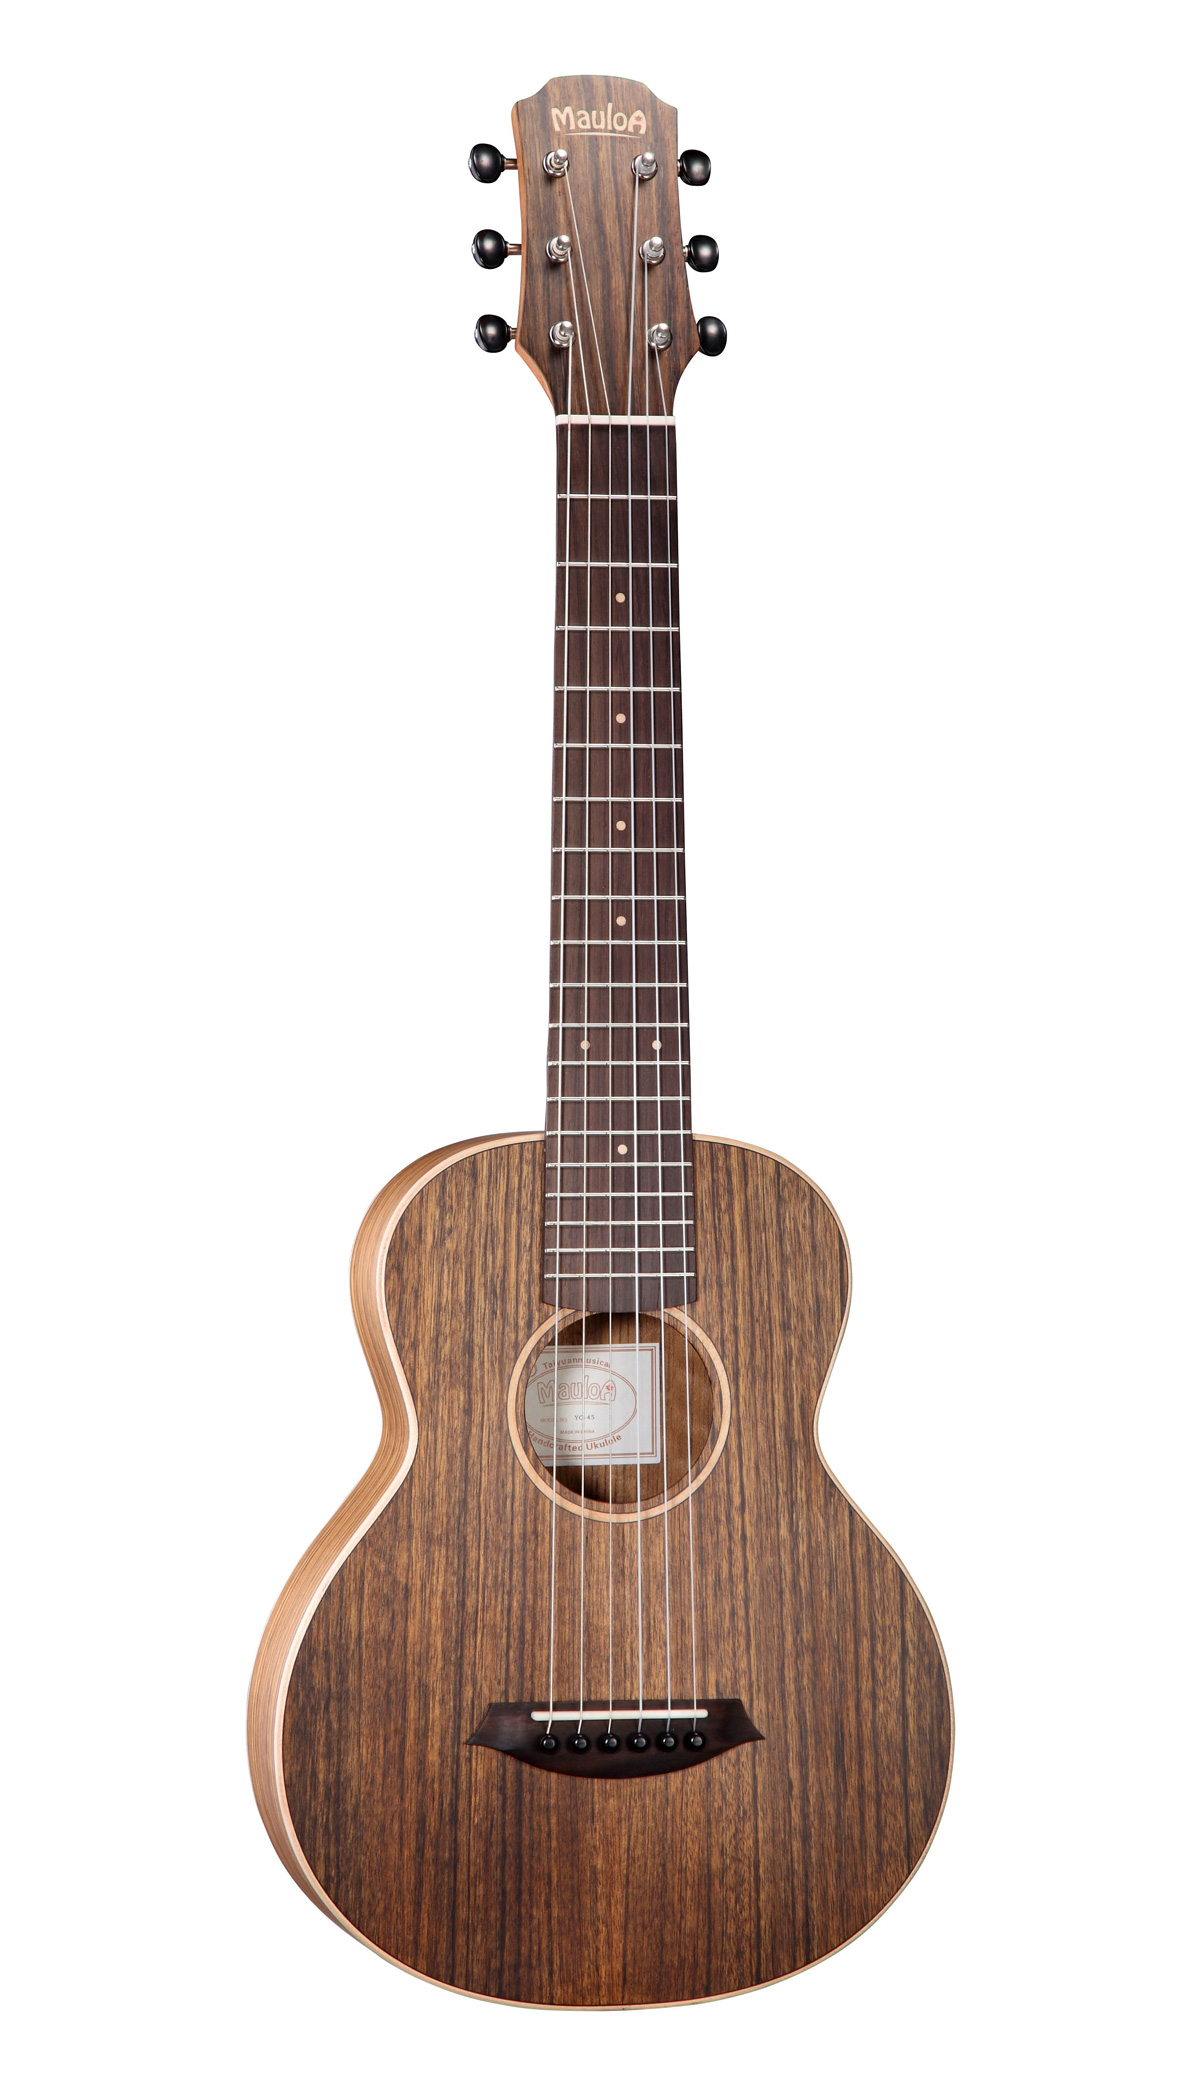 Walnut Solid Top,Guitarlele